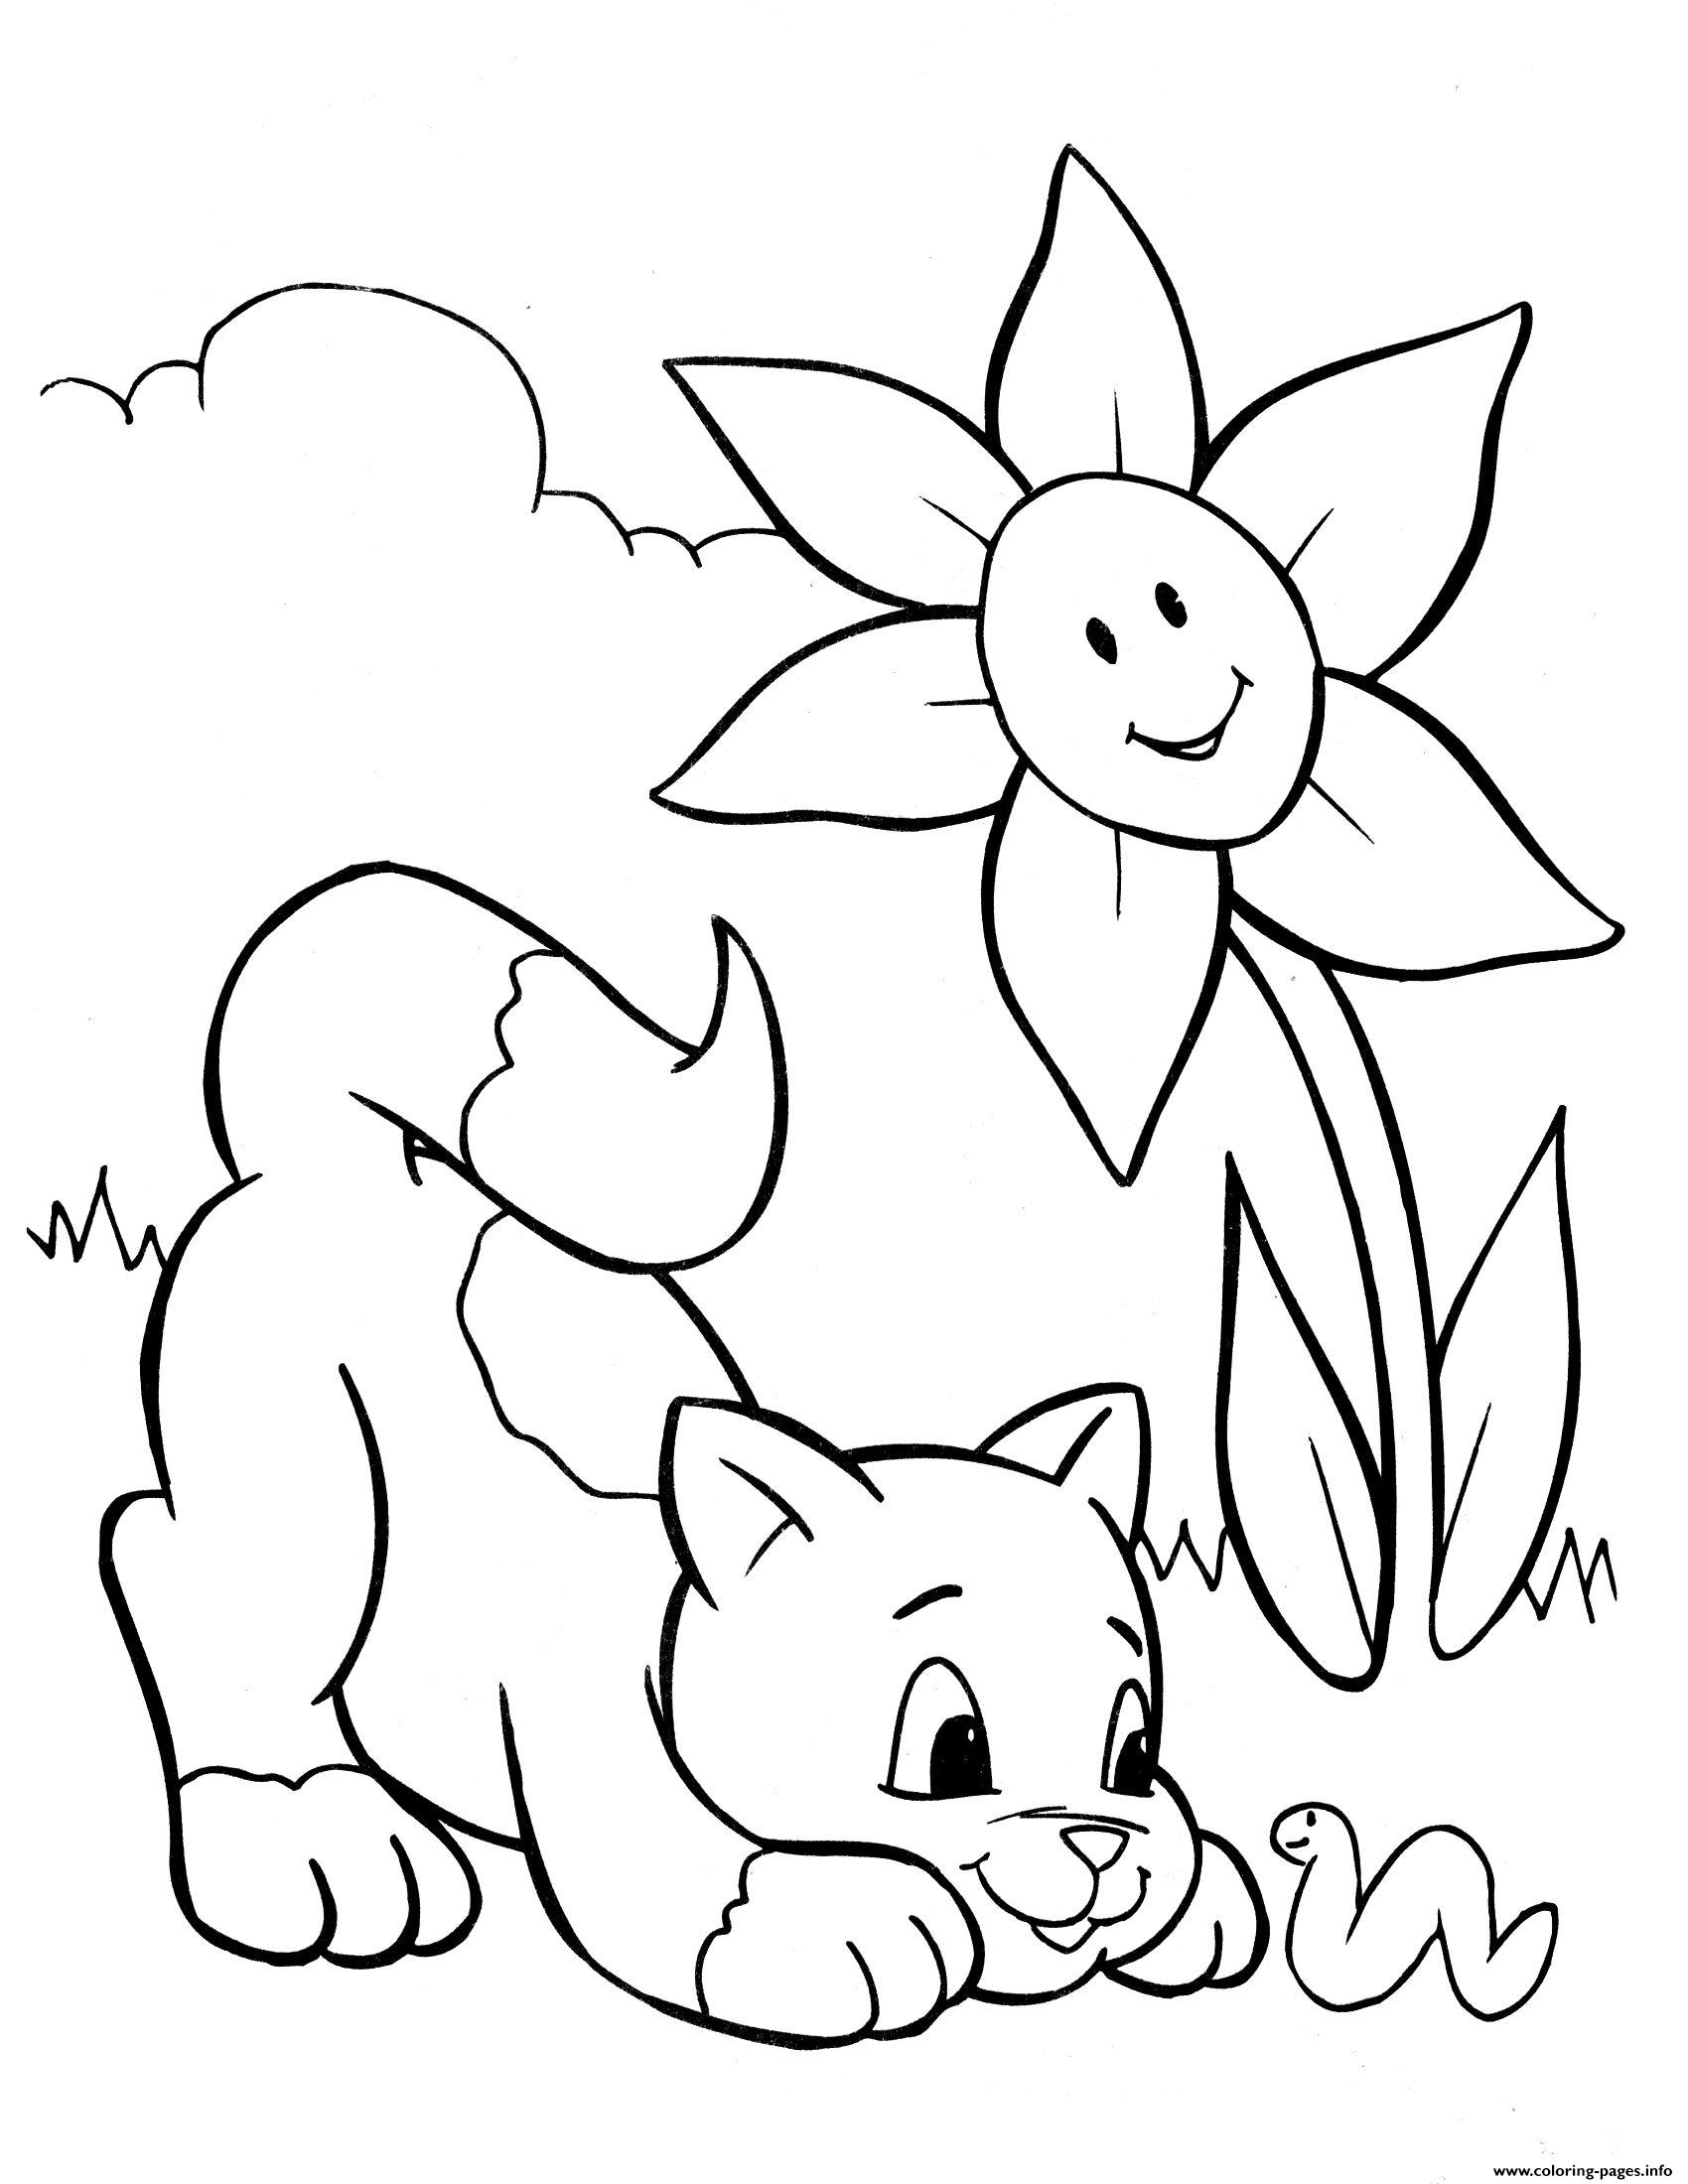 Crayola Cat And Snake Animal Coloring Pages Printable